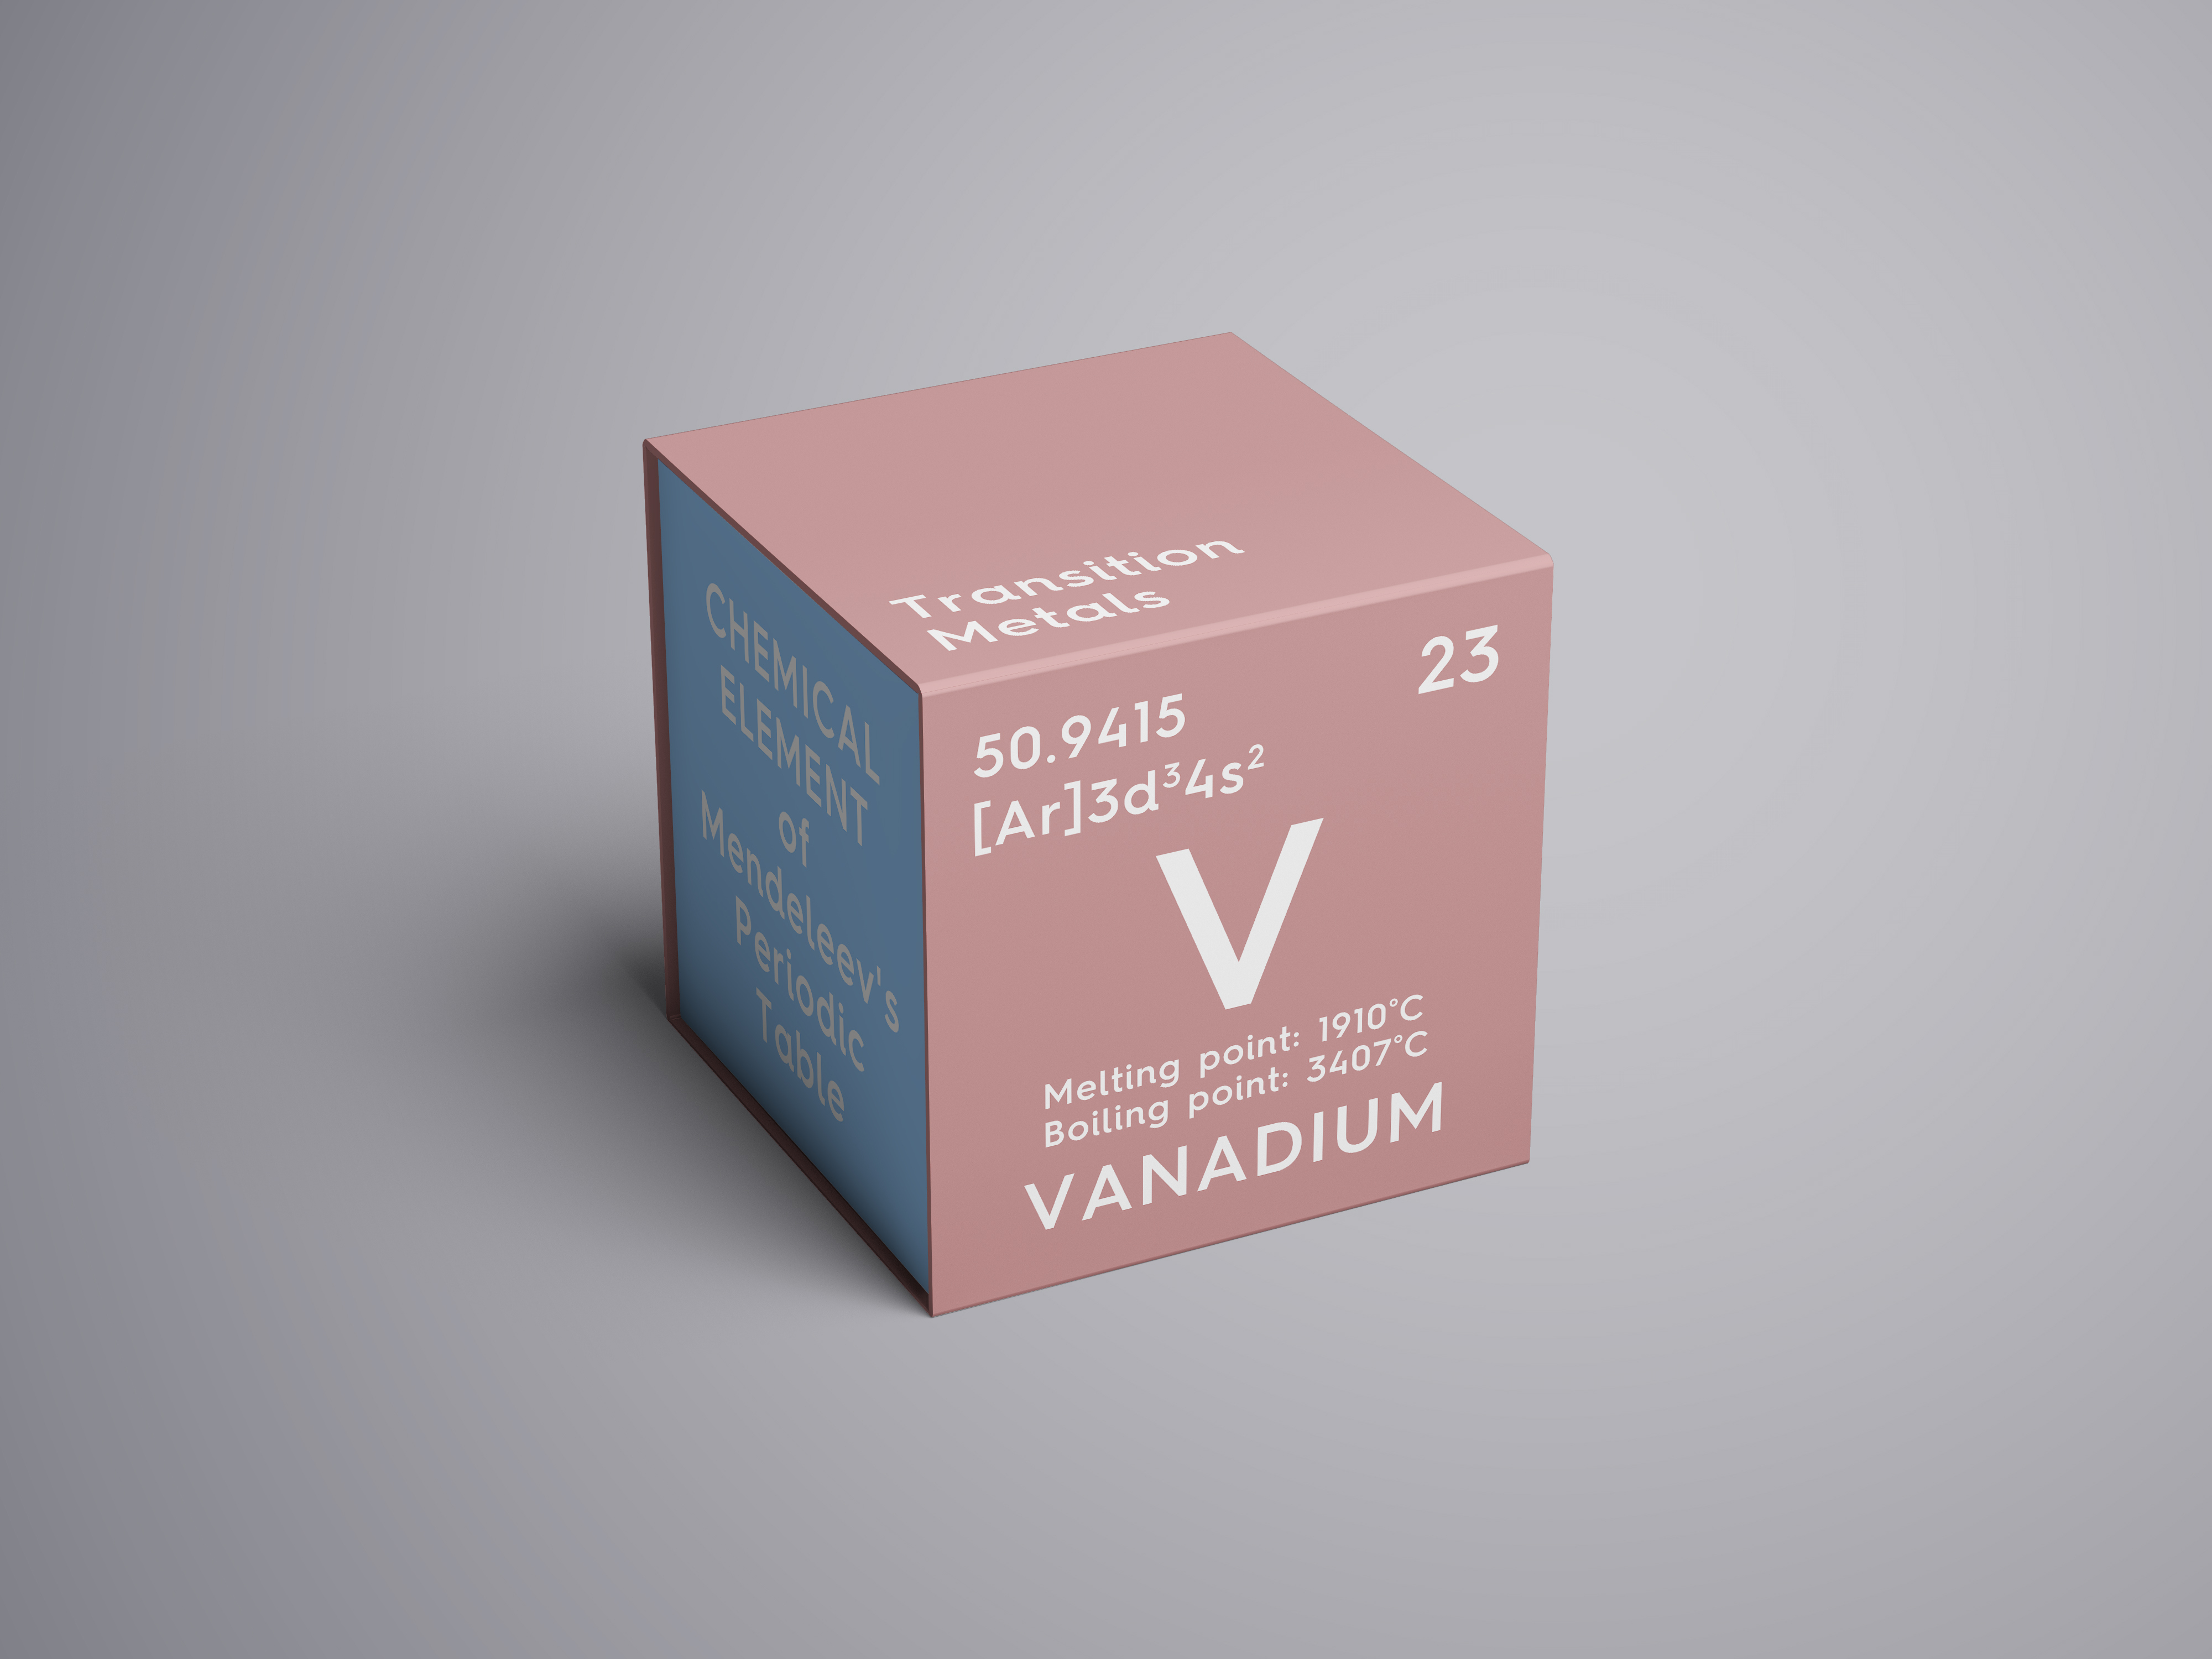 Pink cube with vanadium element information from the periodic table.